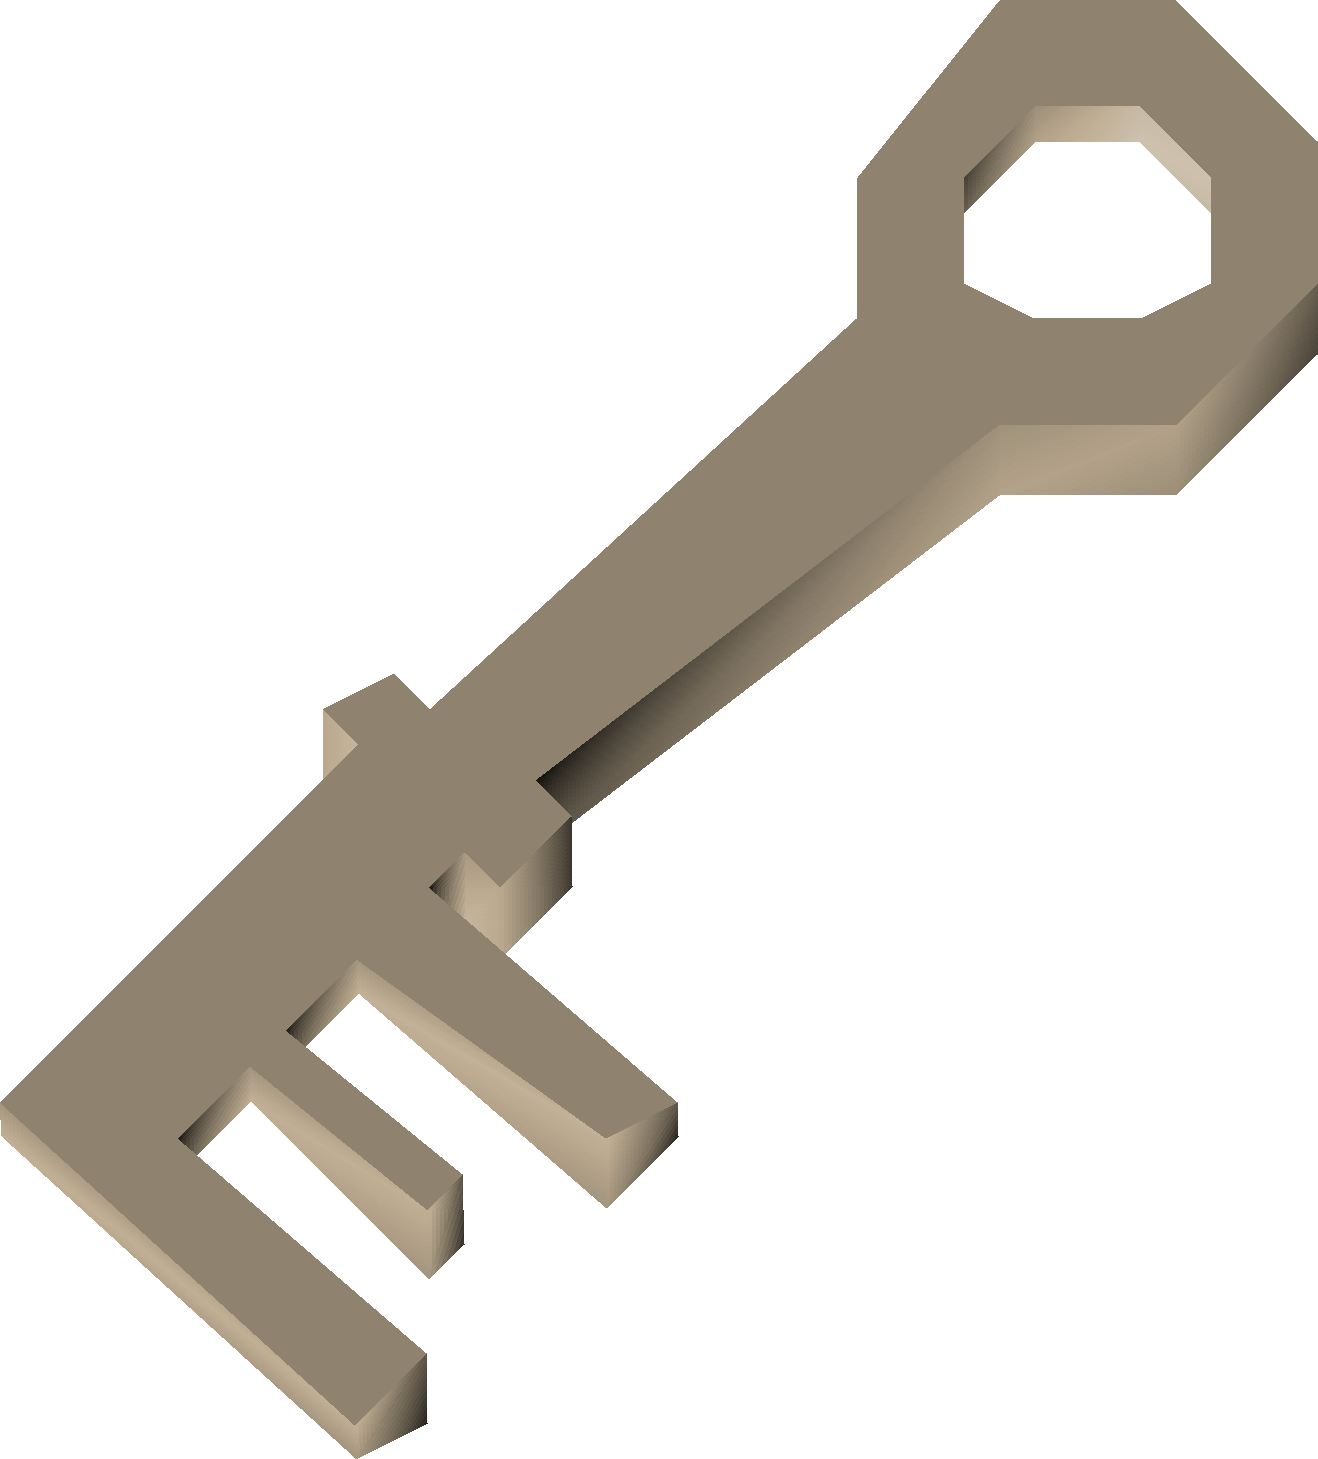 File:Metal key detail.png